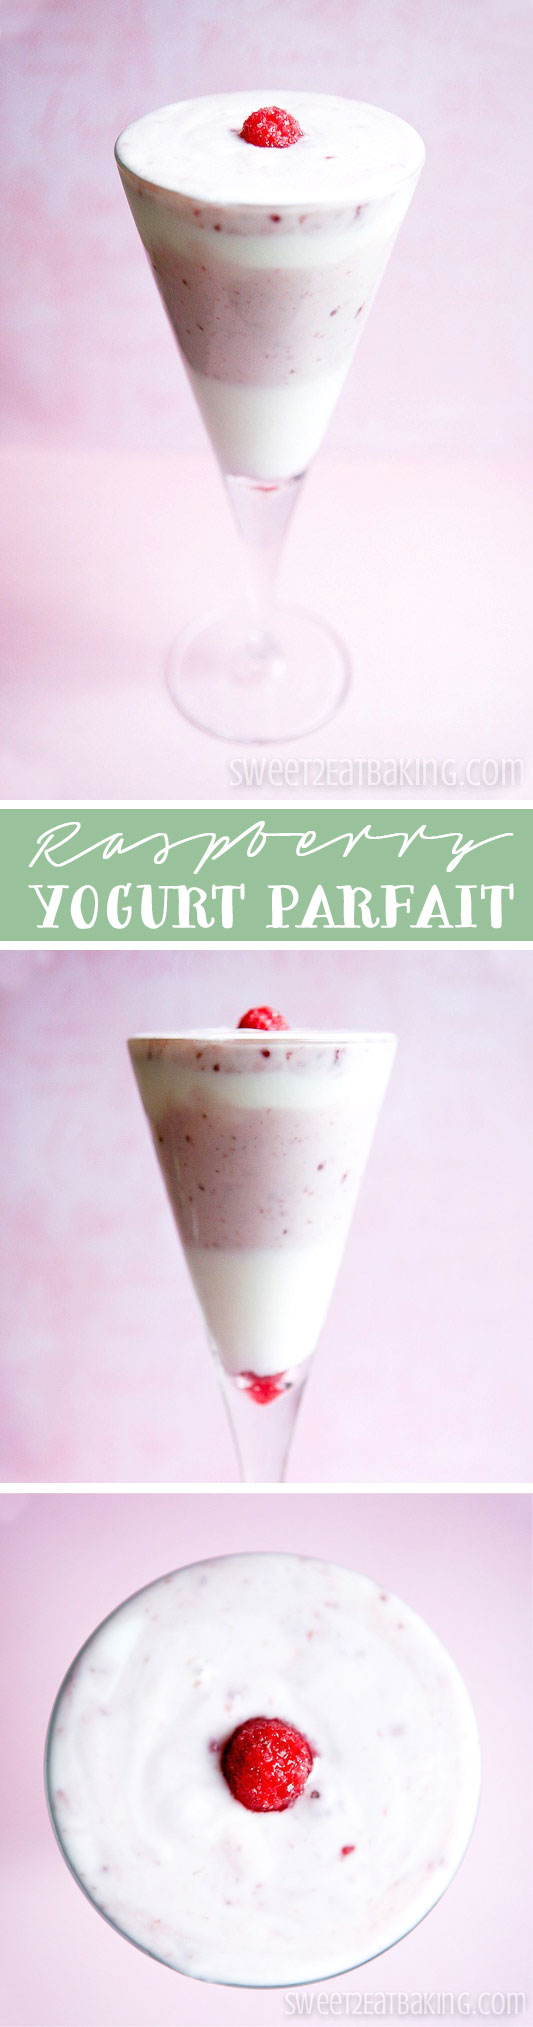 Quick and Easy Raspberry Natural Yogurt Parfait Recipe by Sweet2EatBaking.com | A perfect healthy cooling treat for hot summer days. Only 2-3 ingredients needed. Ready in under 5 minutes!